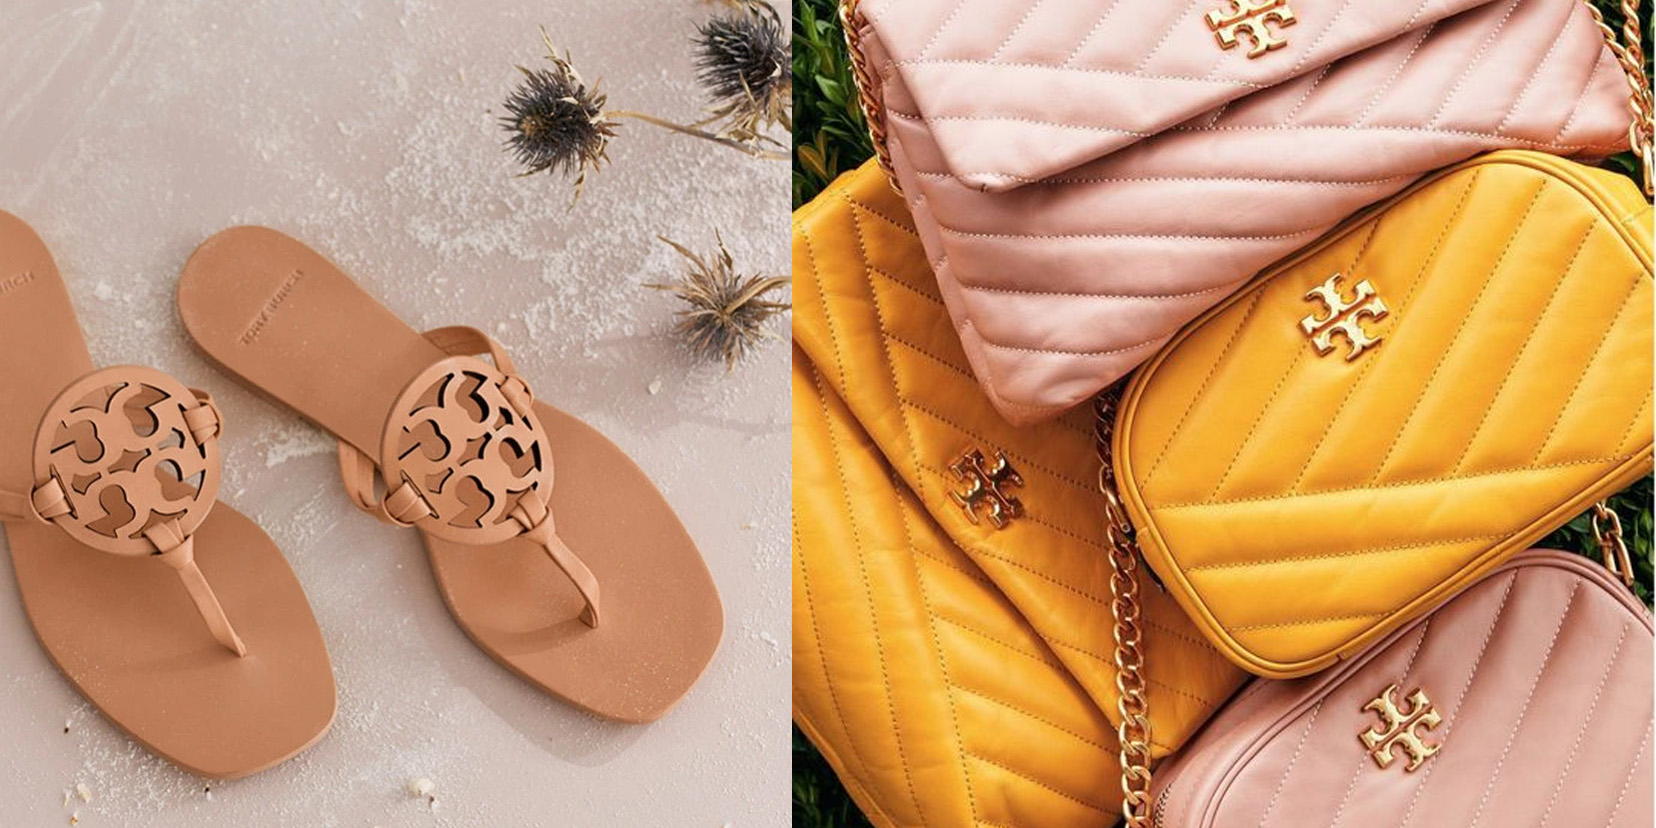 Tory Burch's Spring Sale offers up to 40% off Miller sandals, handbags & much more